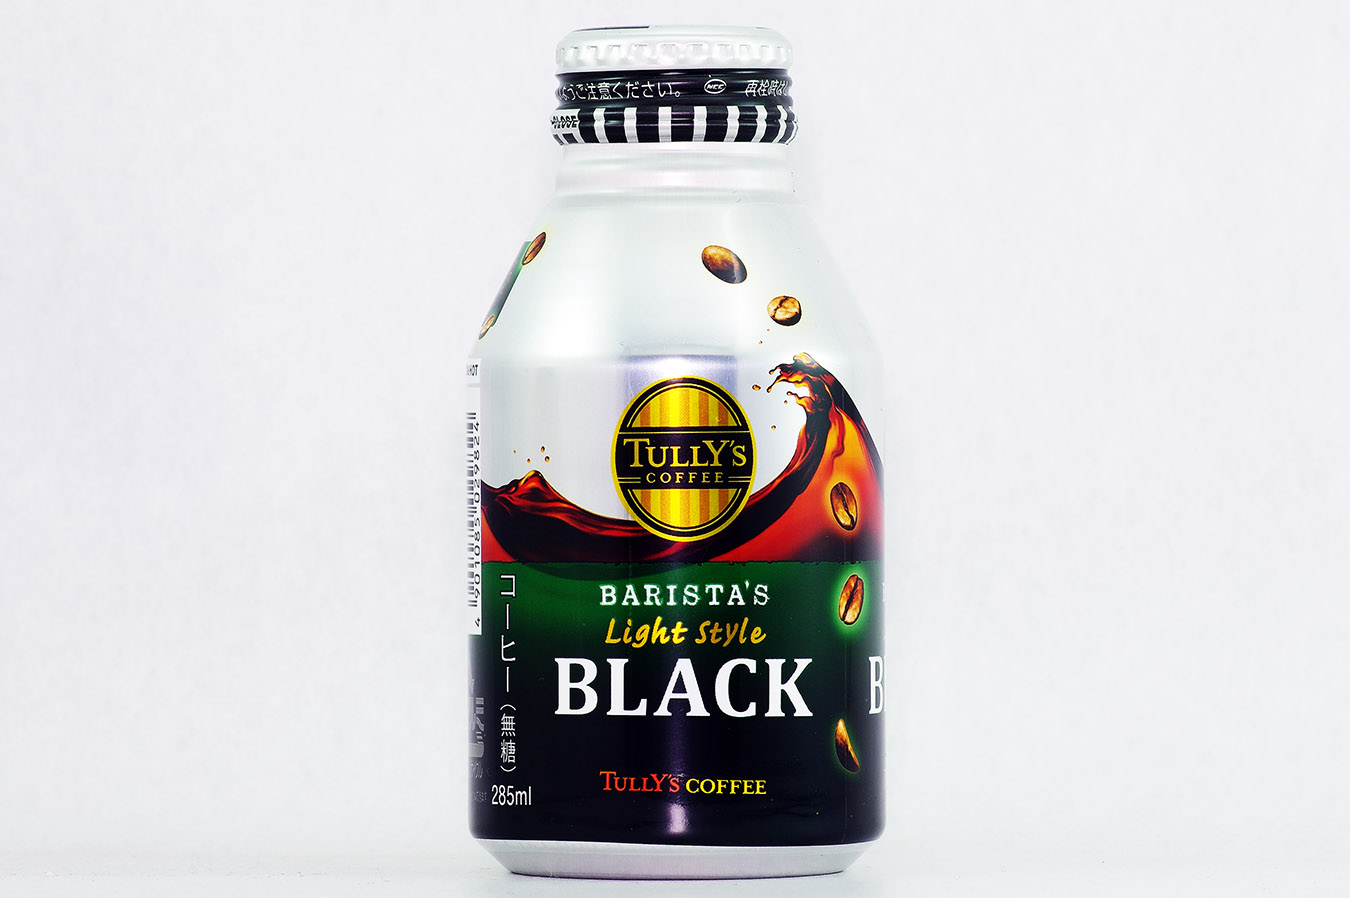 TULLY'S COFFEE BARISTA'S Light Style BLACK ボトル缶 285ml 2016年4月